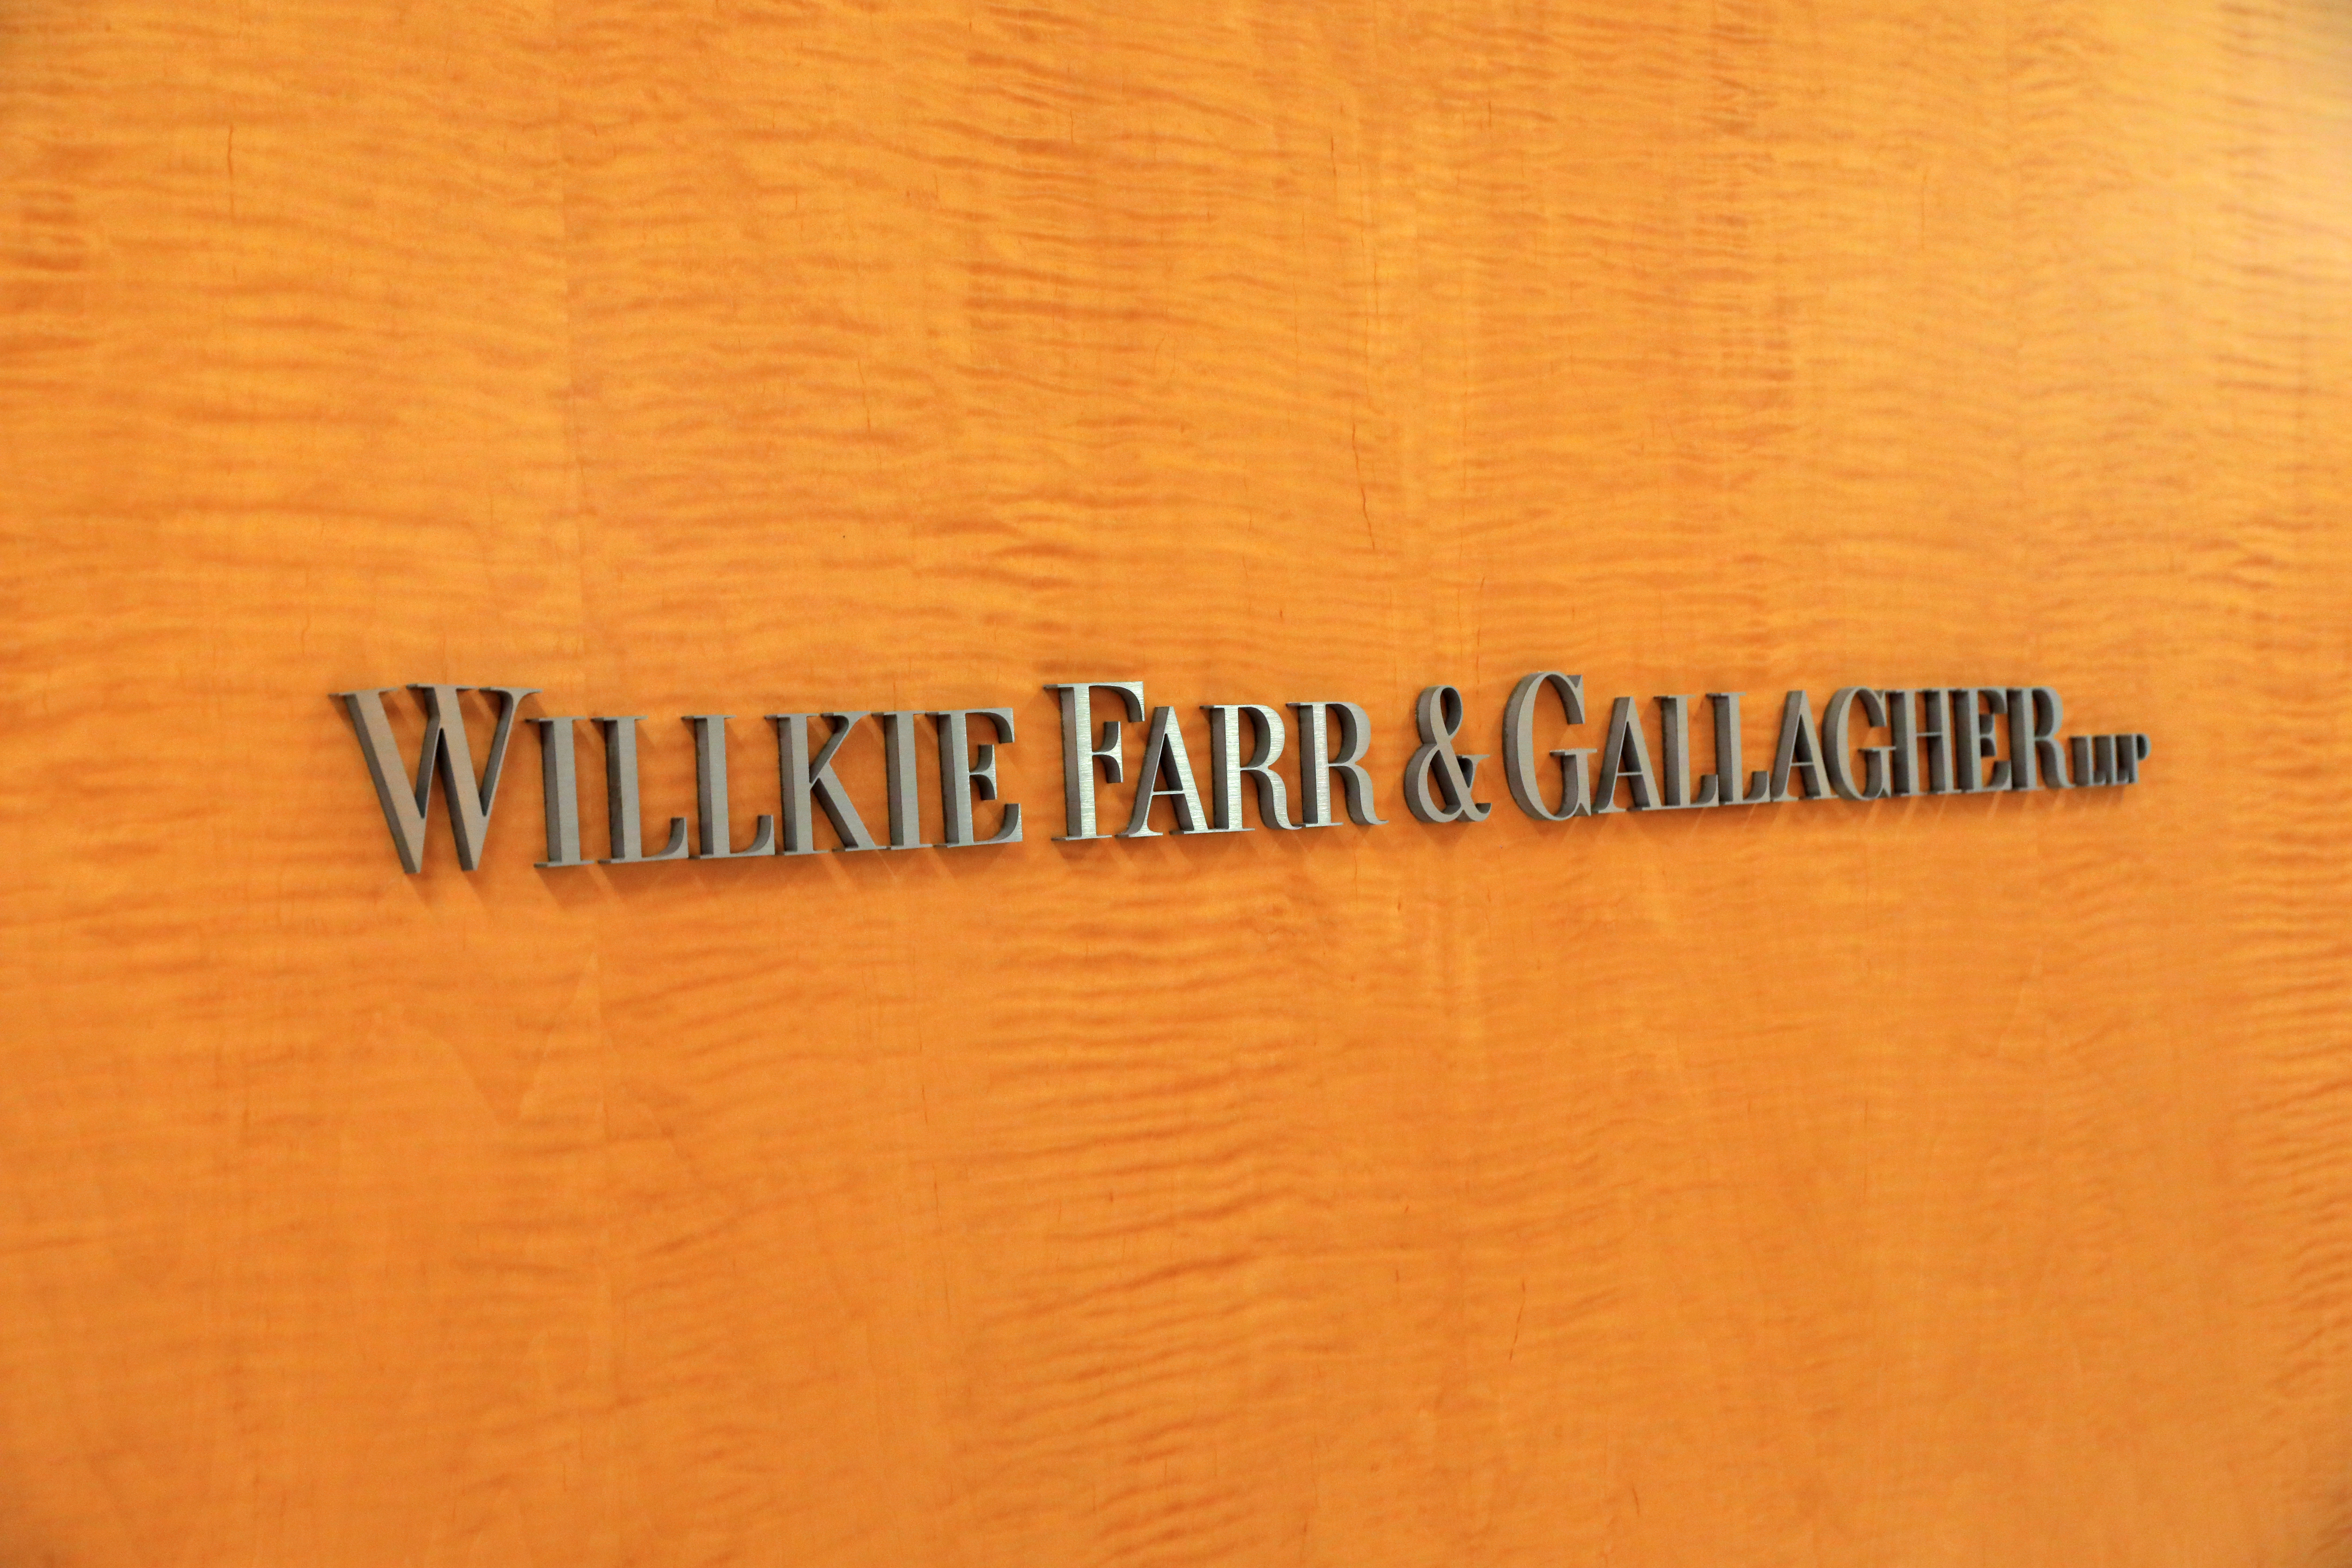 Willkie Farr & Gallagher offices in New York City. REUTERS/Andrew Kelly